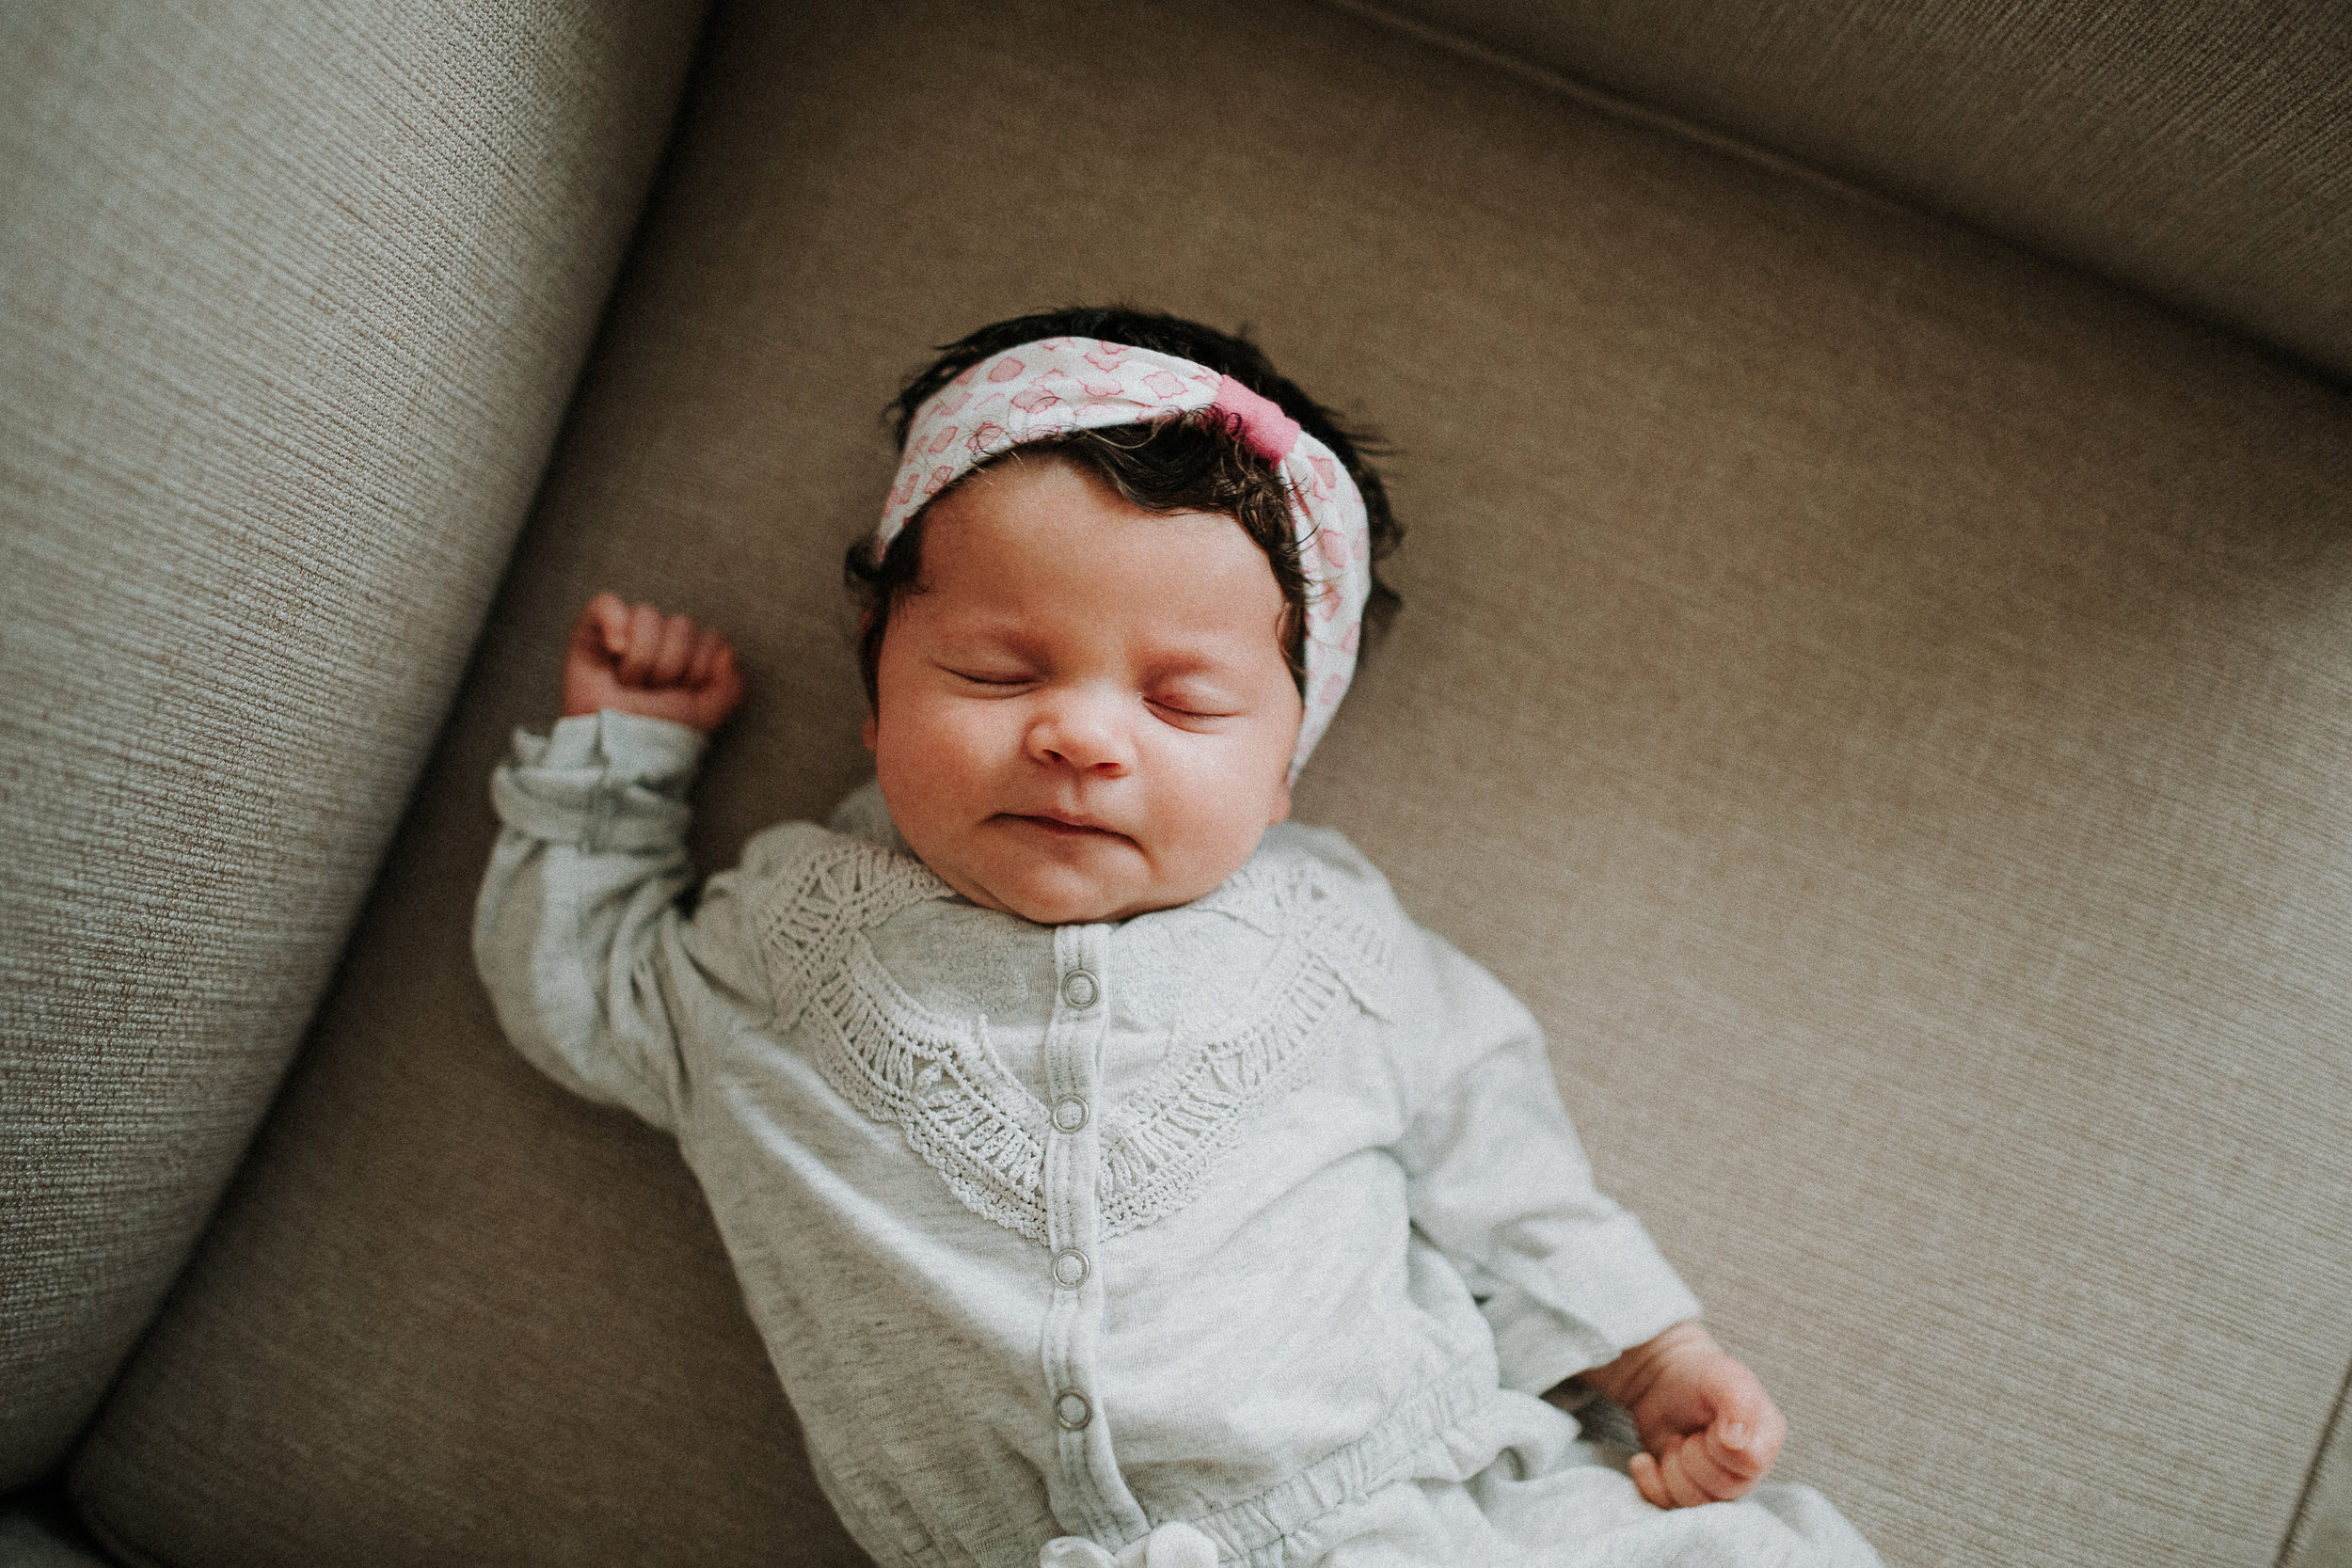 Newborn-Photographer-Bellingham-WA-Brianne-Bell-Photography-(Anya)560.jpg